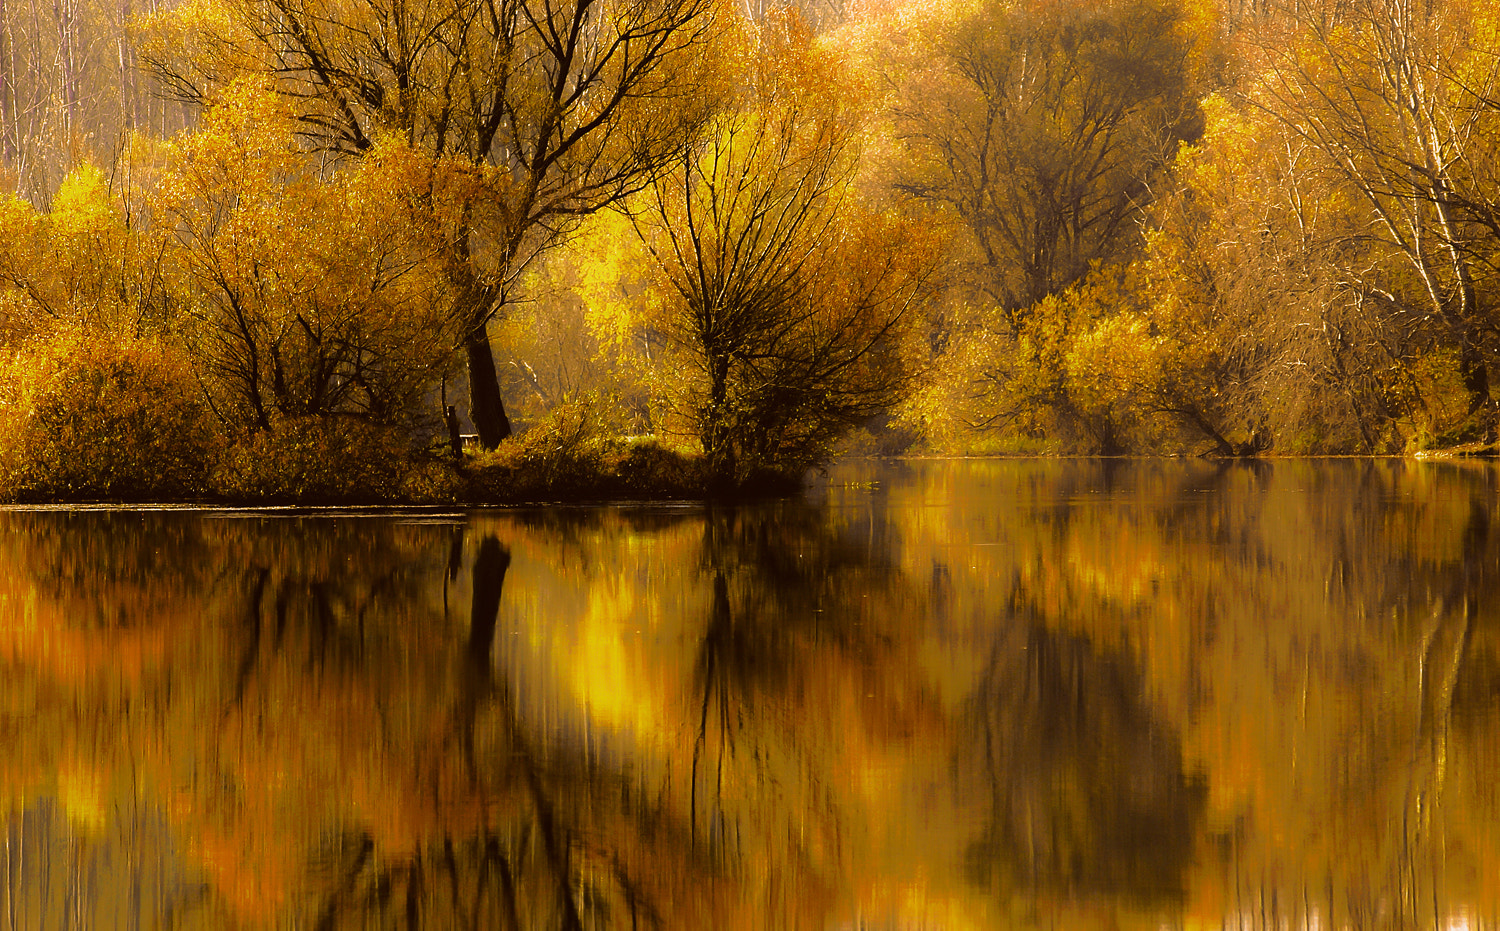 Photograph Autumn in the mirror by Andy 58 on 500px